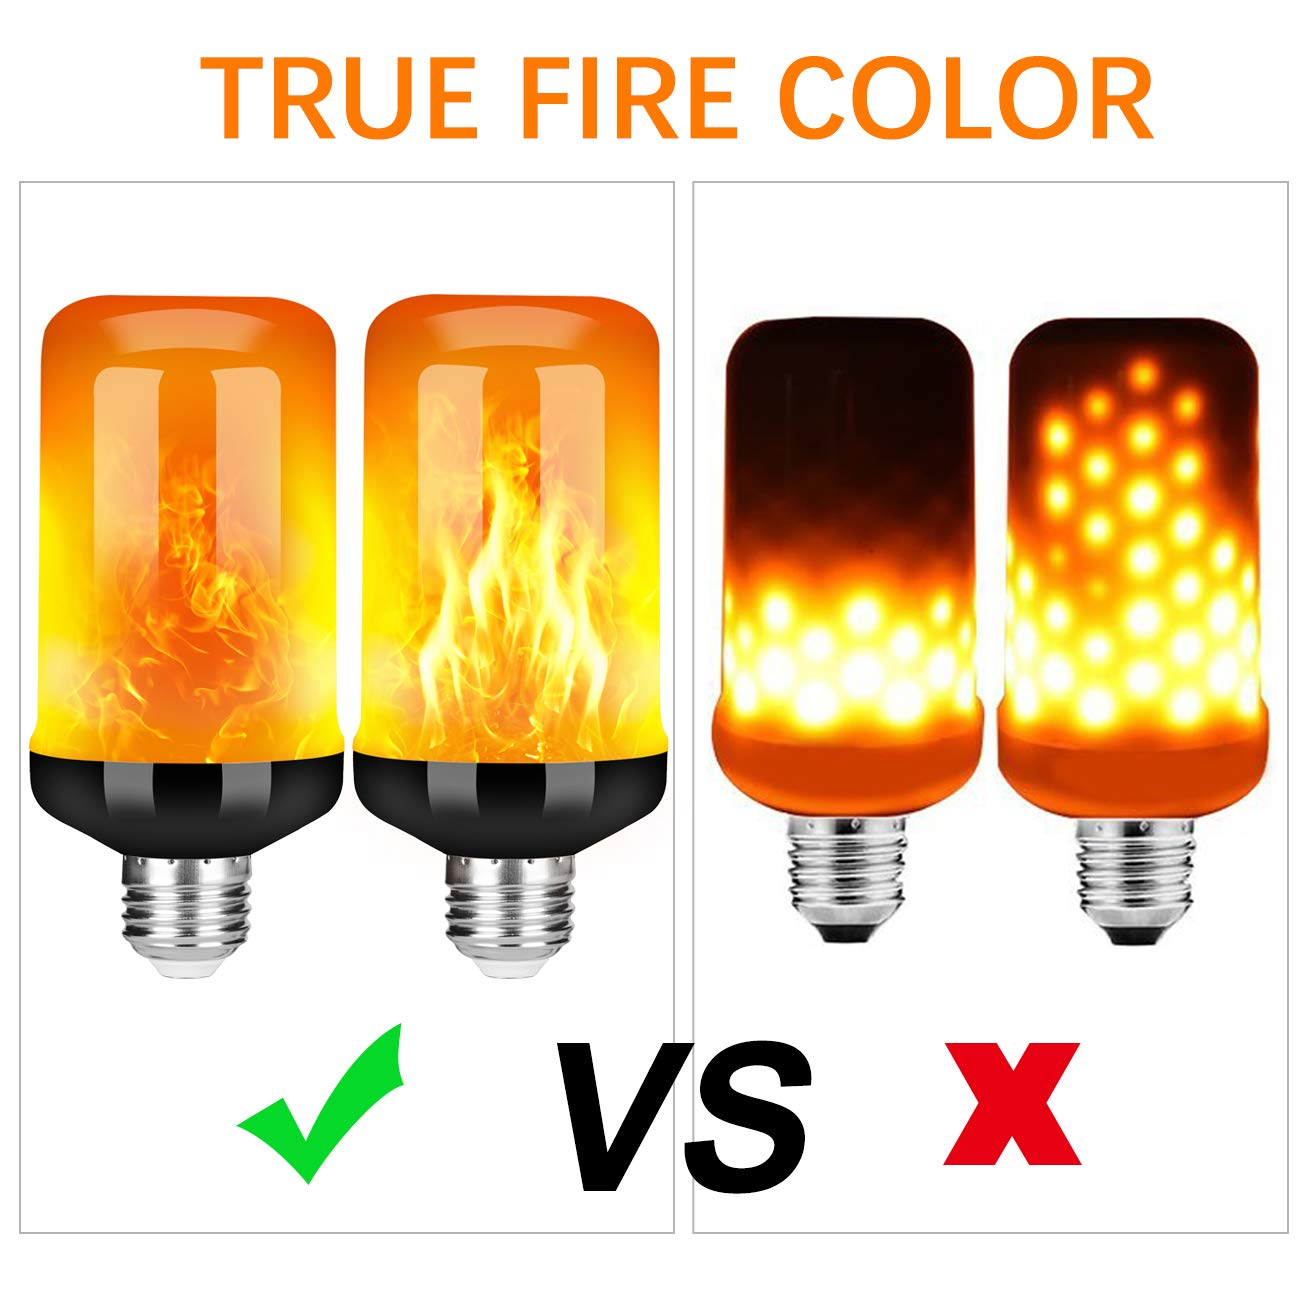 4 Pack E26 Base Flame Bulb with Upside Down Effect Upgraded 4 Modes Flickering Fire Holiday Light Halloween Decorations Y- STOP LED Flame Effect Fire Light Bulb